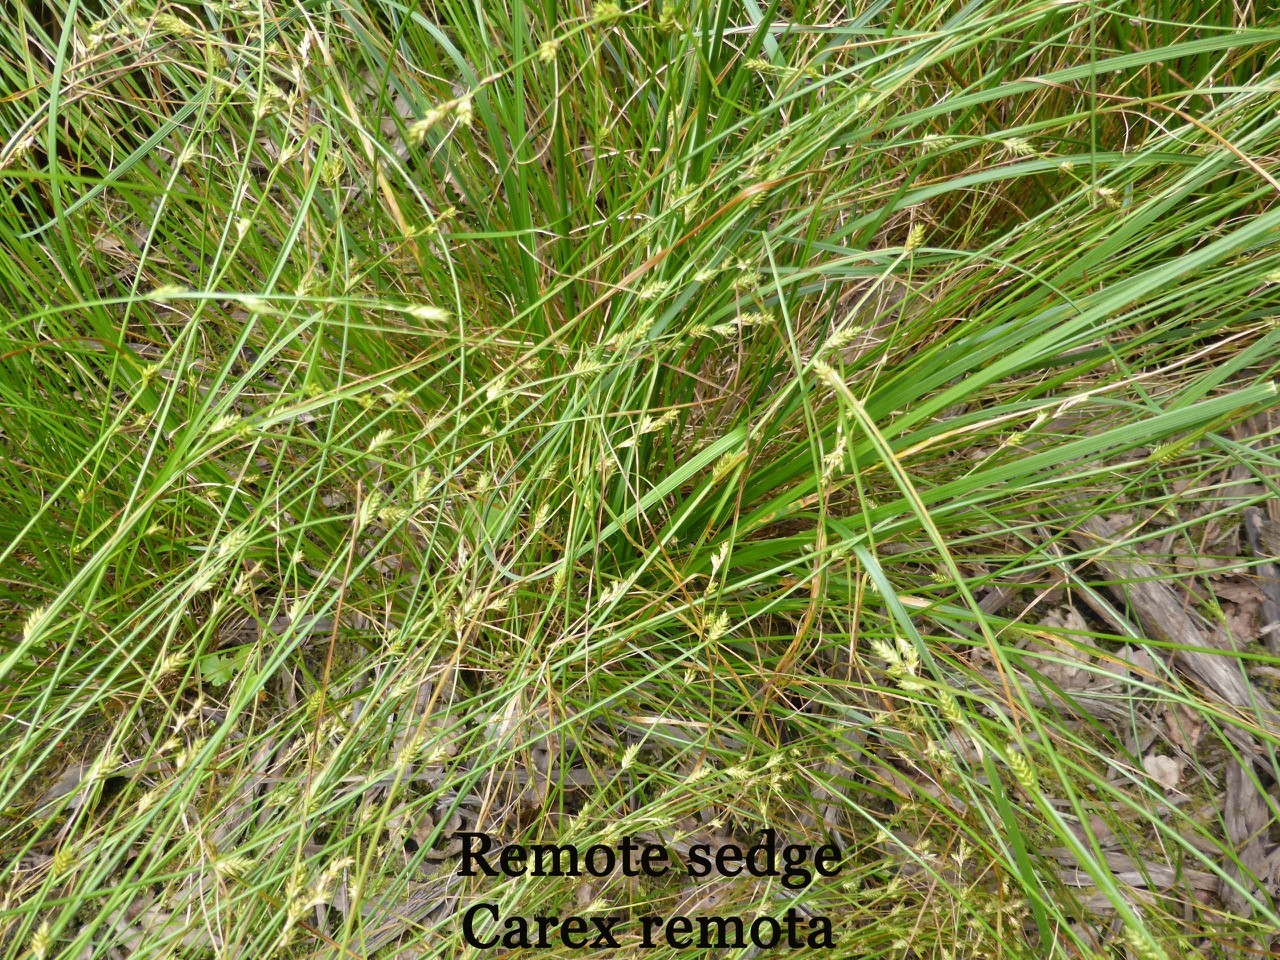 Remote Sedge (Carex remota).